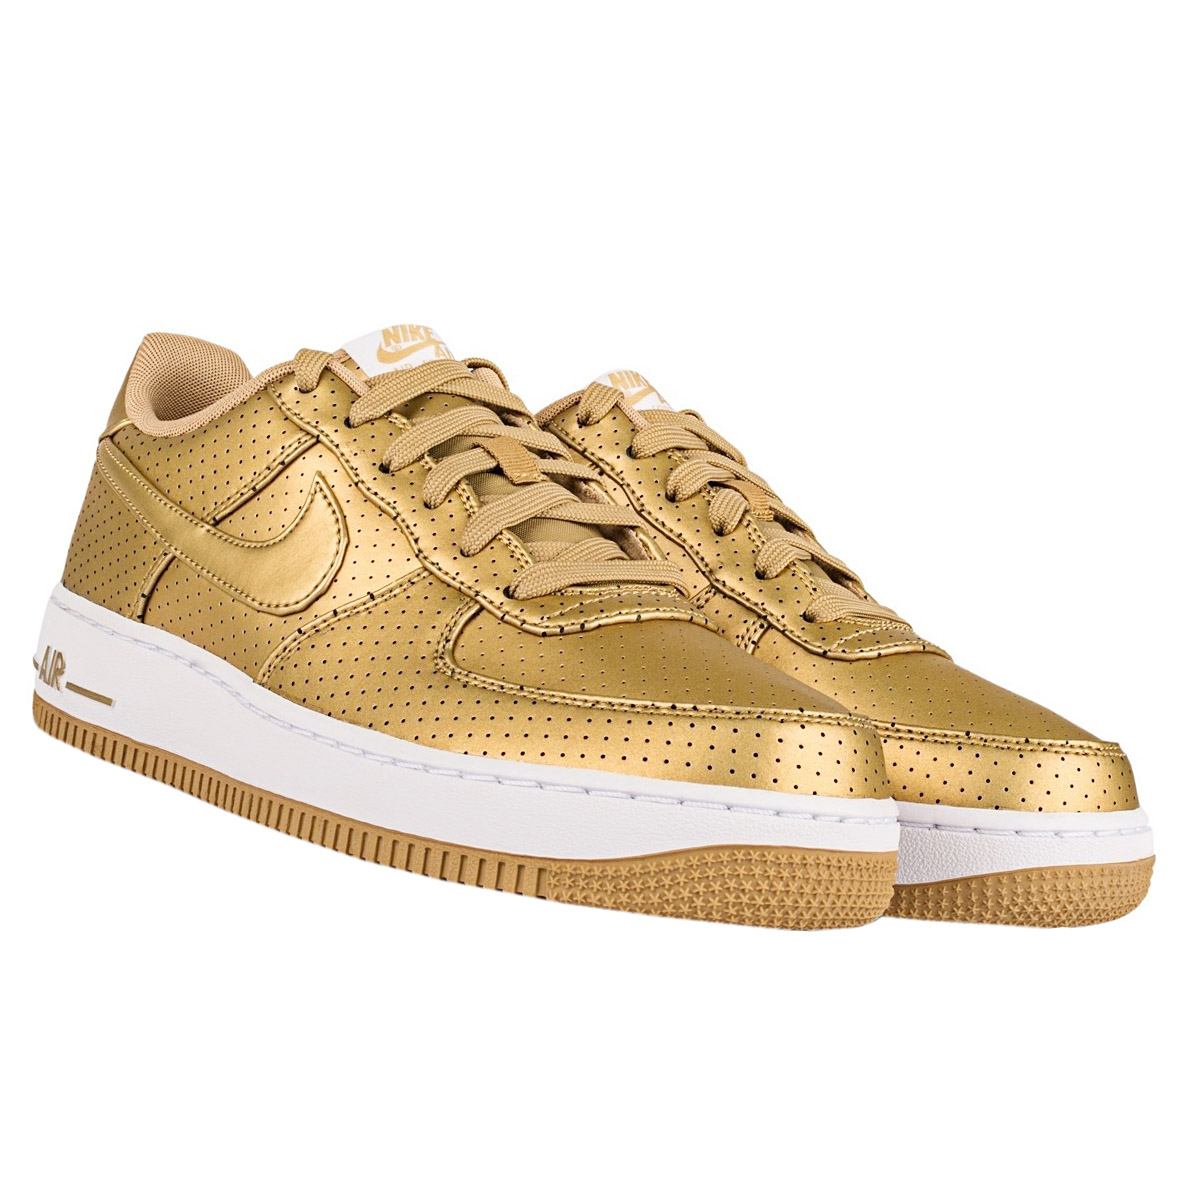 nike women air force 1 one lv8 gold edition shoes womens. Black Bedroom Furniture Sets. Home Design Ideas